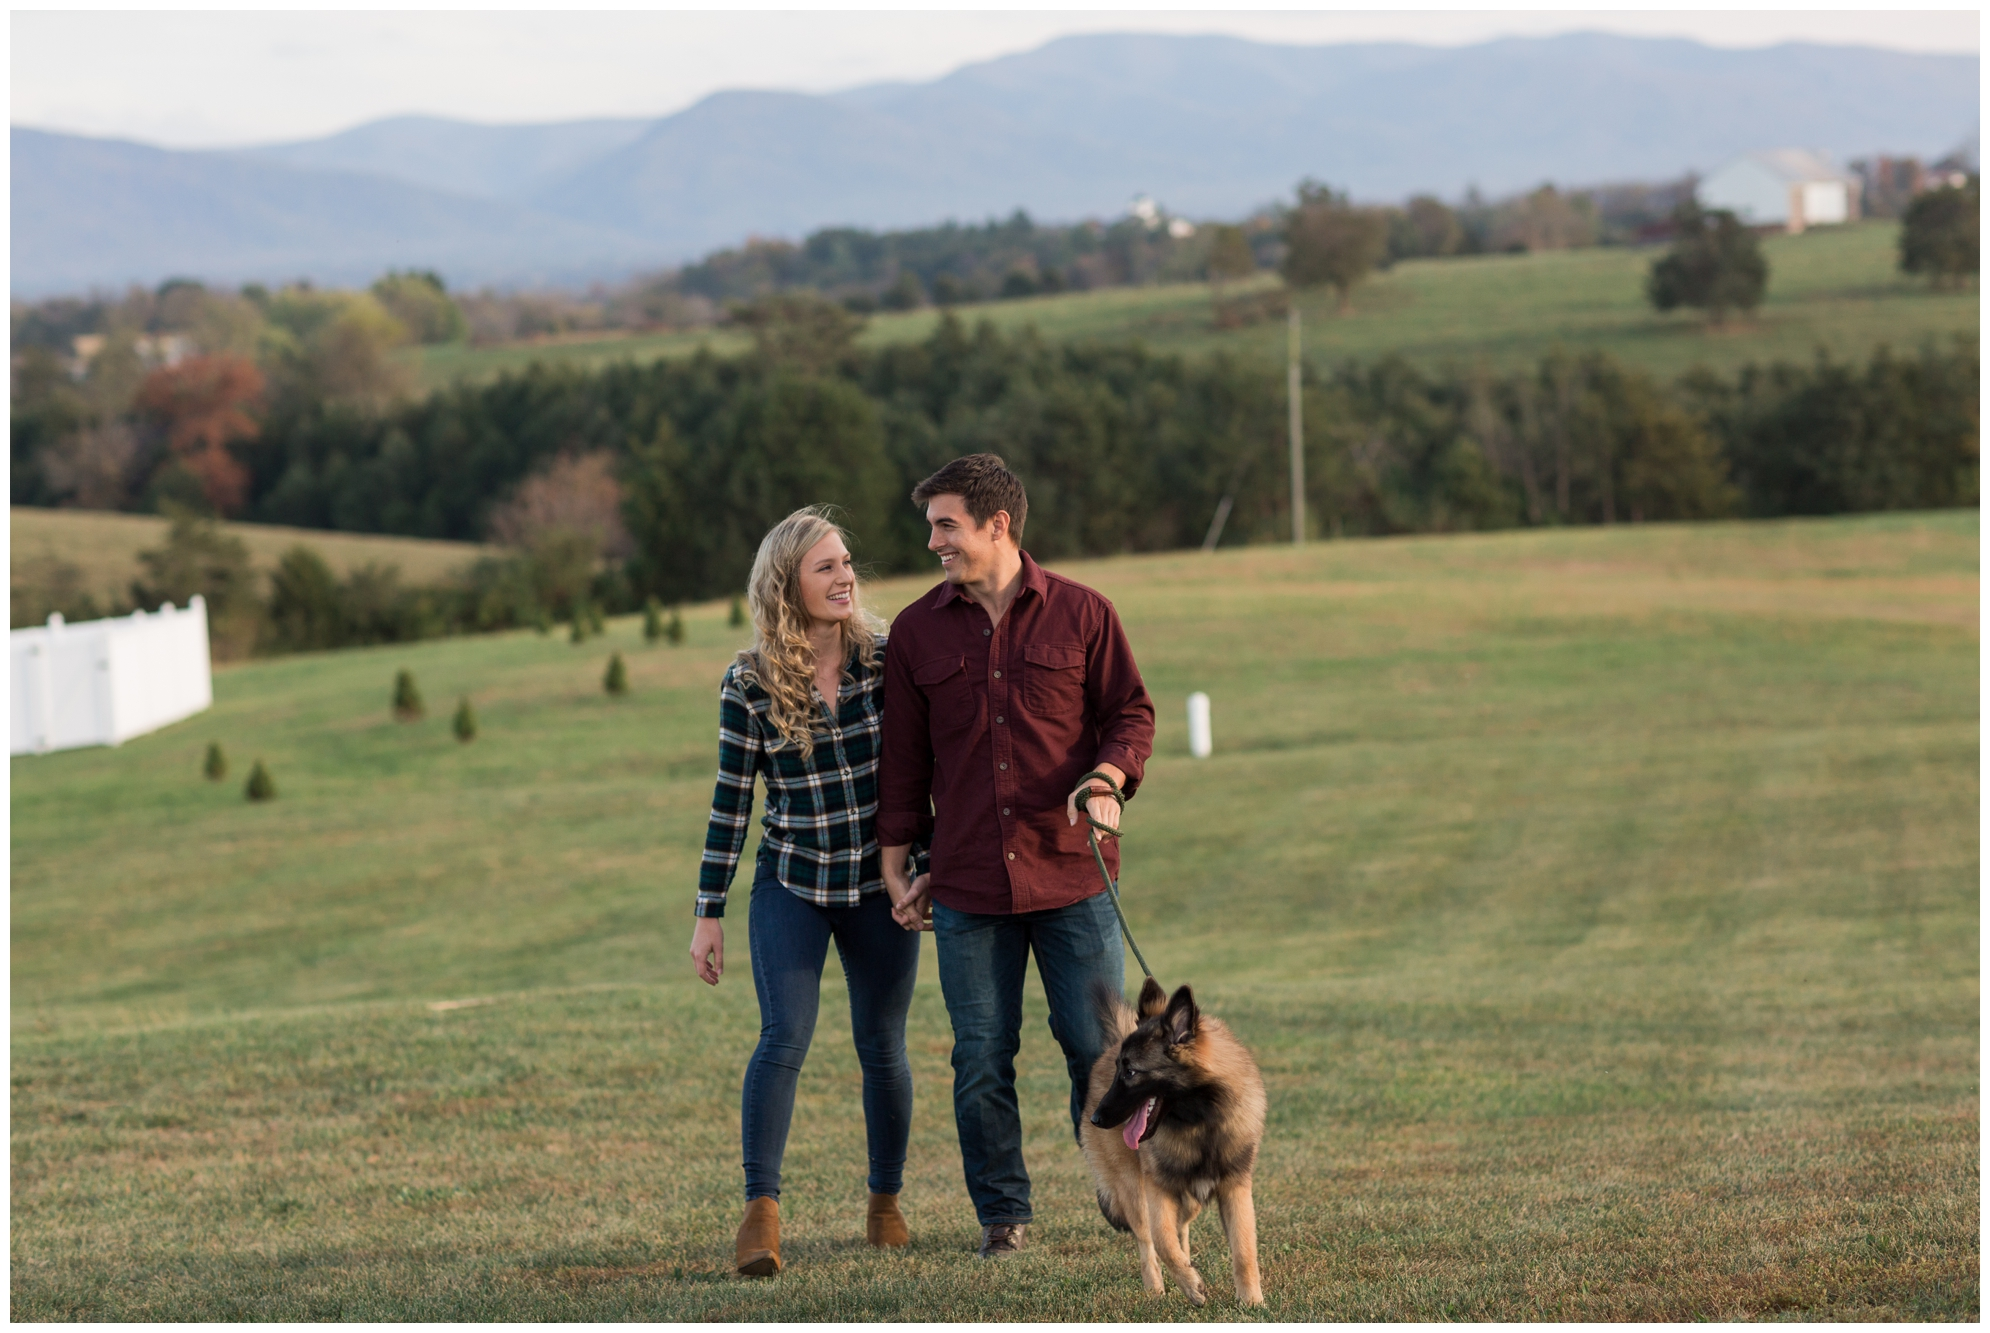 Best engagement session locations near the Shenandoah Valley, Harrisonburg, Staunton, Charlottesville and central Virginia